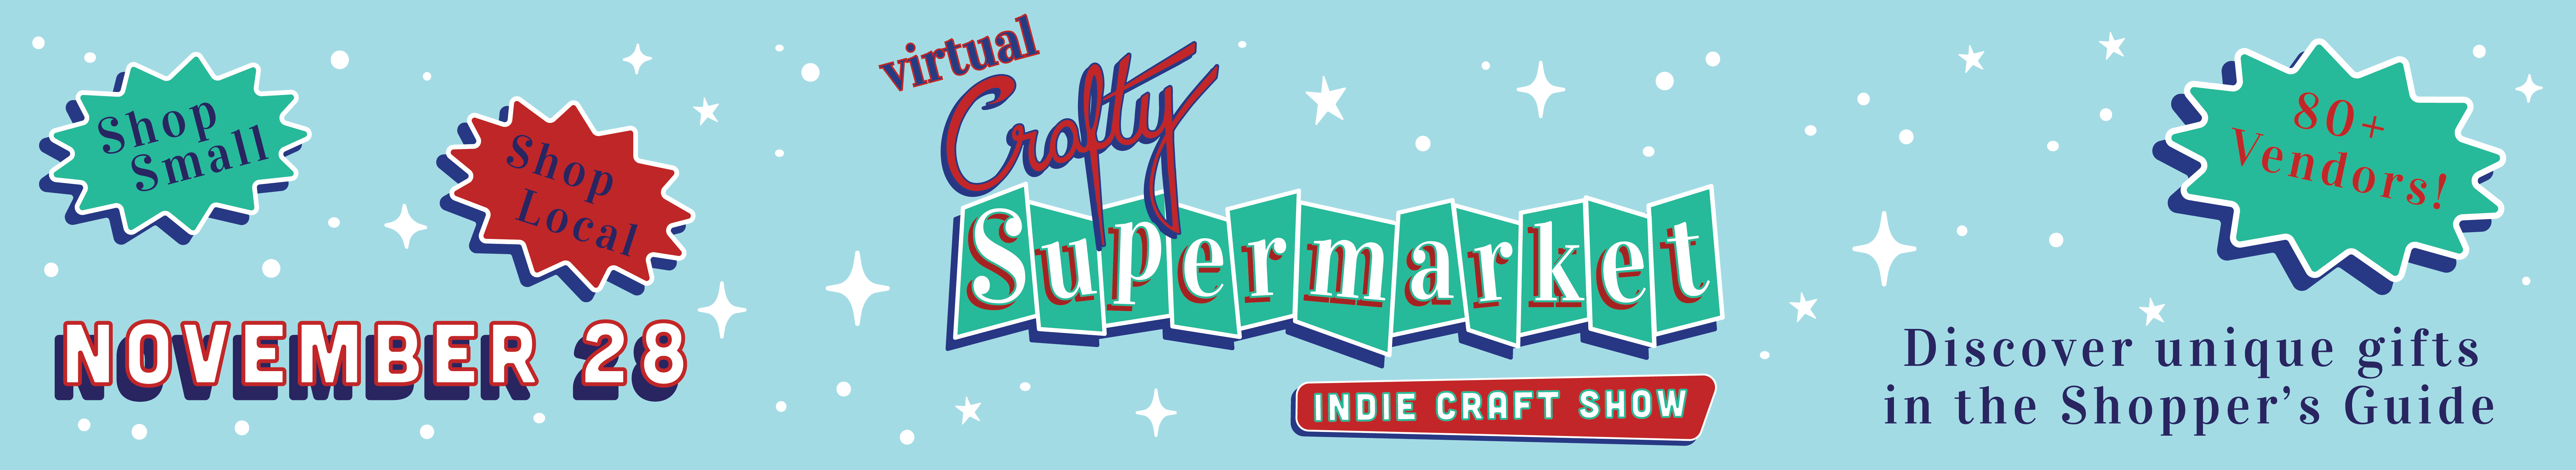 crafty supermarket cincinnati ohio indie craft show